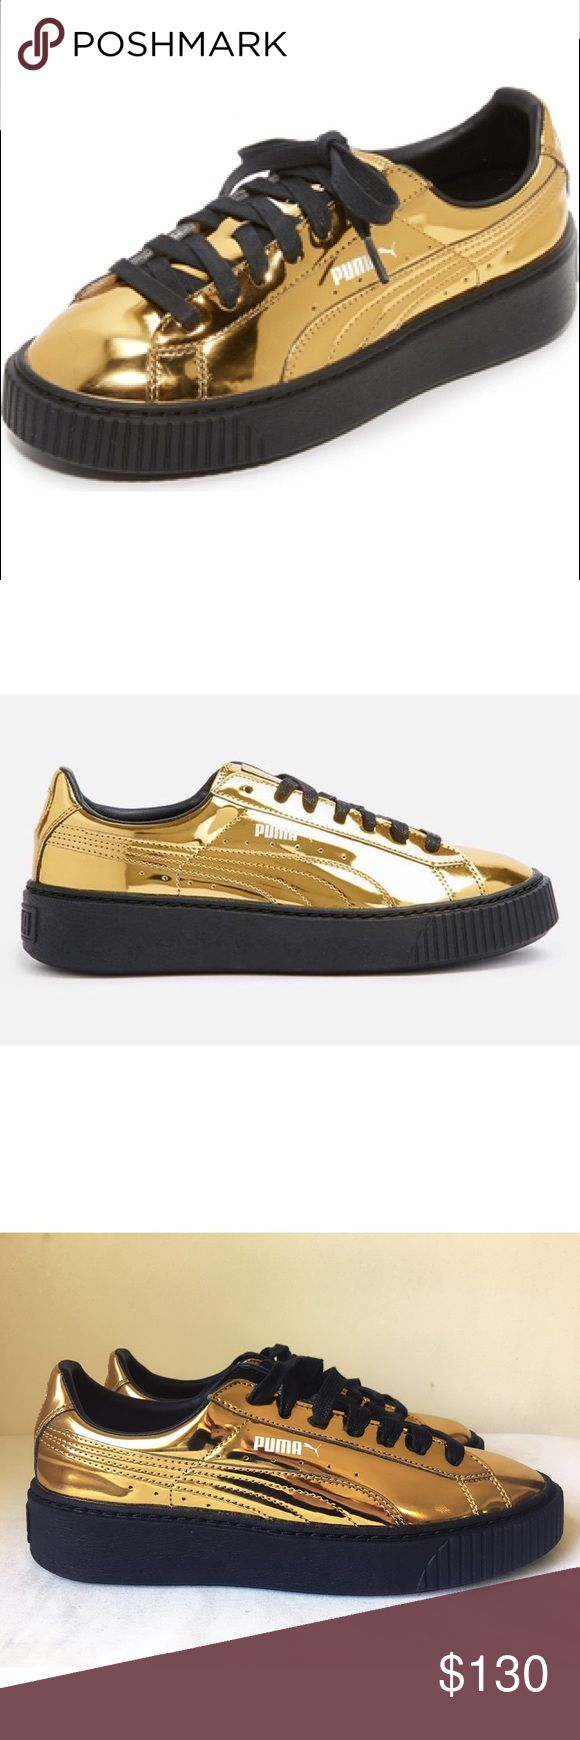 RIHANNA X PUMA CREEPER METALLIC GOLD SNEAKER SHOE Rihanna X Puma Creepers in Metallic Gold $160 retail completely sold out online in this color!!! A ridged platform lifts these glam, metallic PUMA sneakers. Logo accents at the side. Lace up closure. Rubber sole. Leather: Cowhide. Imported. 100% authentic brand new never worn perfect condition no box Puma Shoes Sneakers